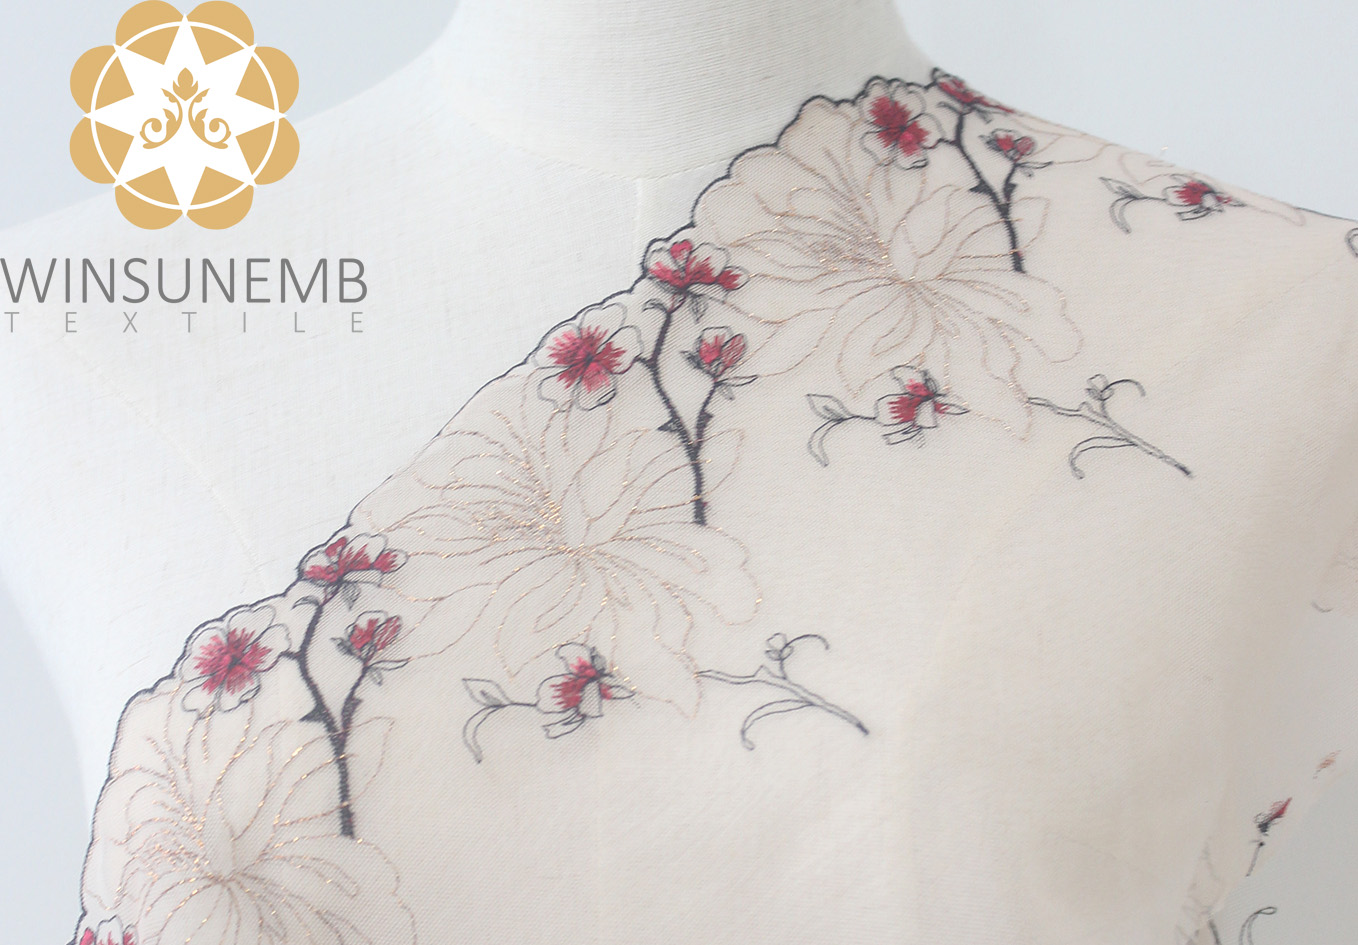 enchanting plum embroidery Lingerie lace trimming(South Korea iljimae),.soft and comfortableEnvironment protection.Cultured sexy.-Winsunemb